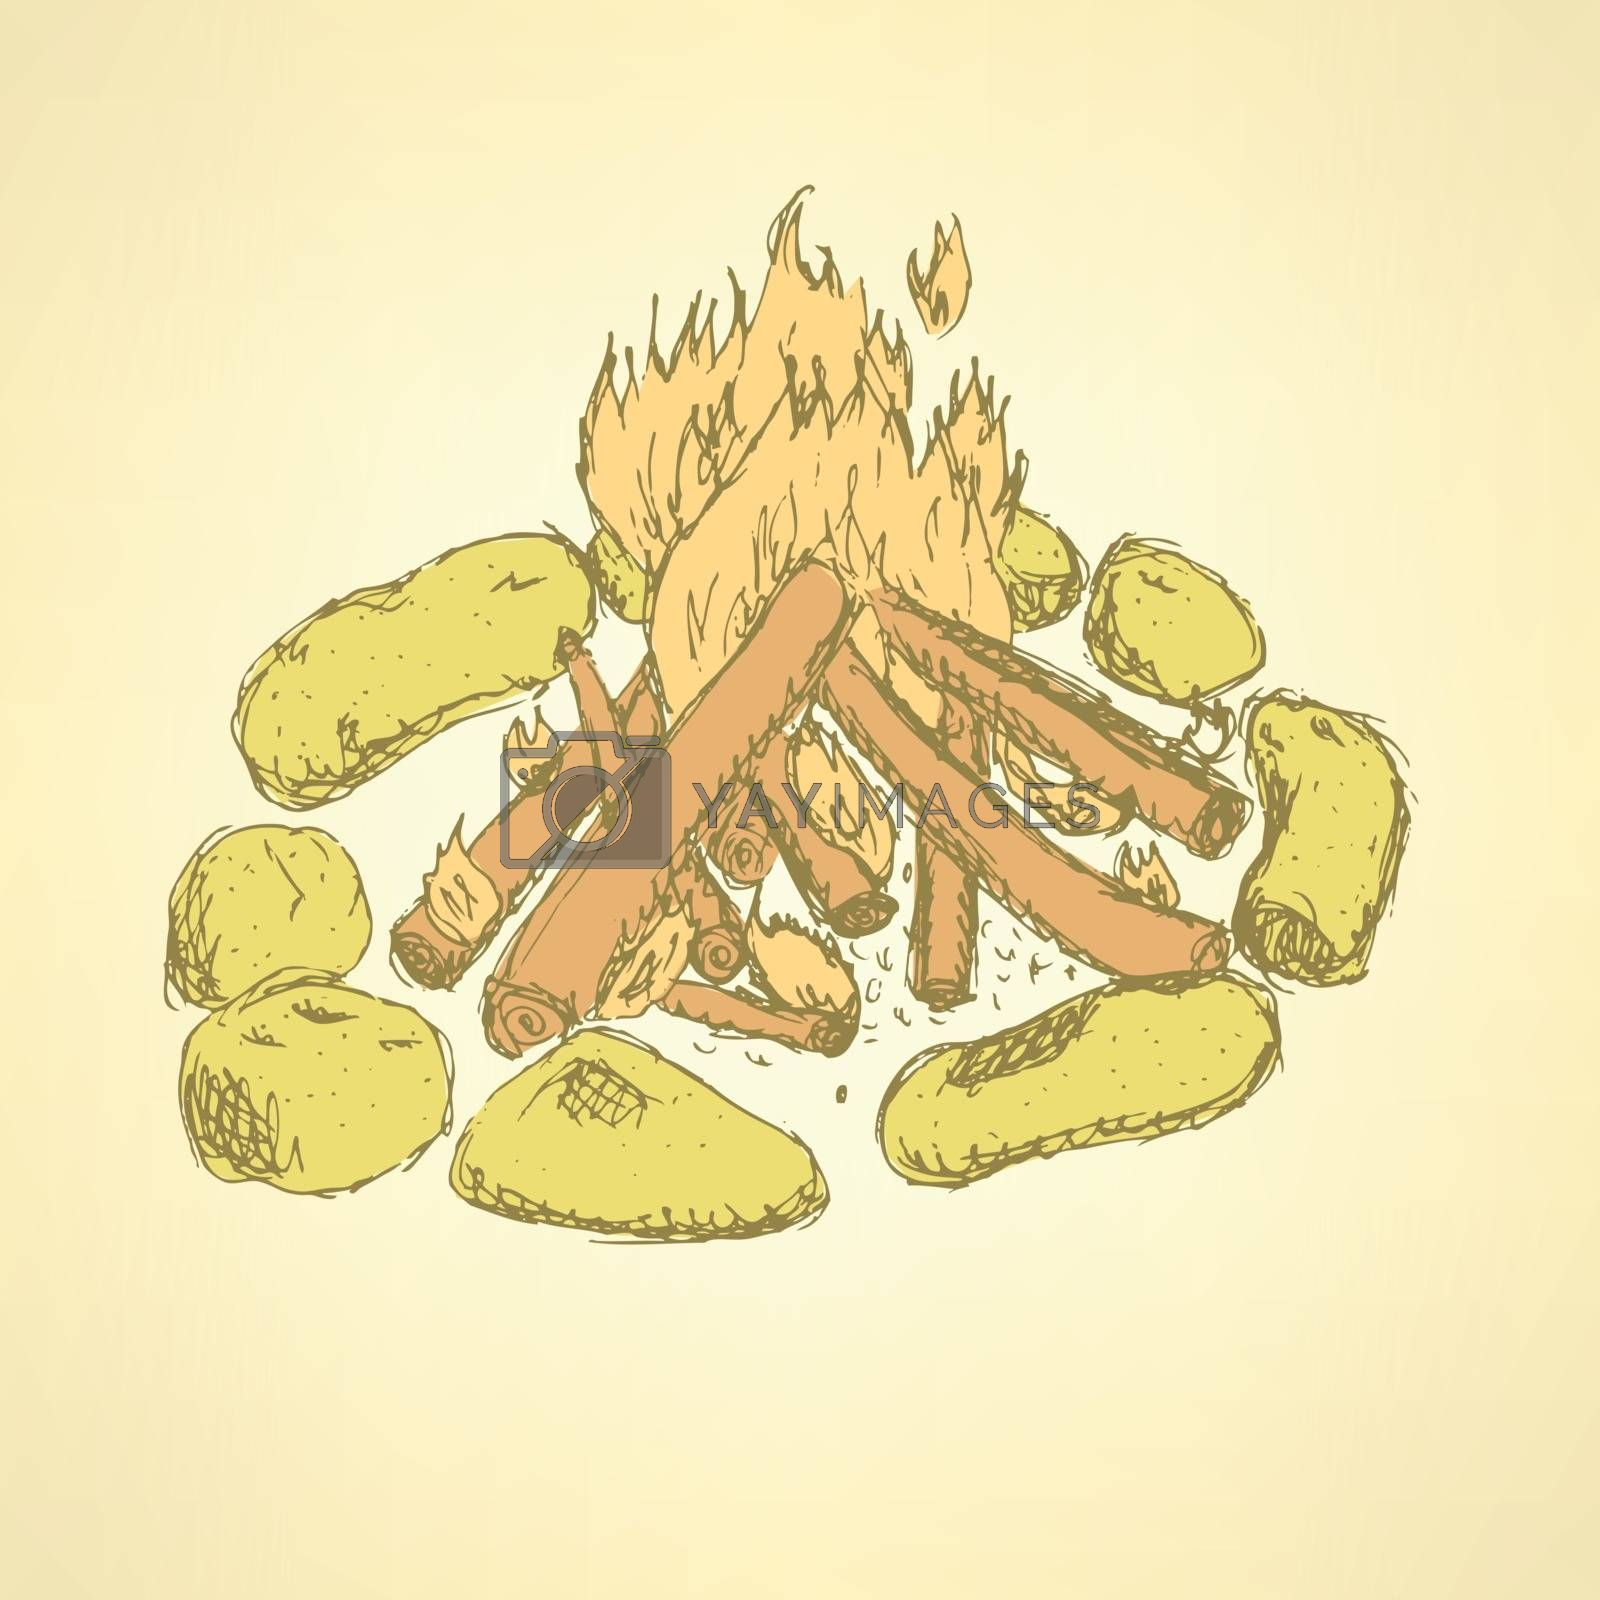 Sketch camp fire in vintage style, vector